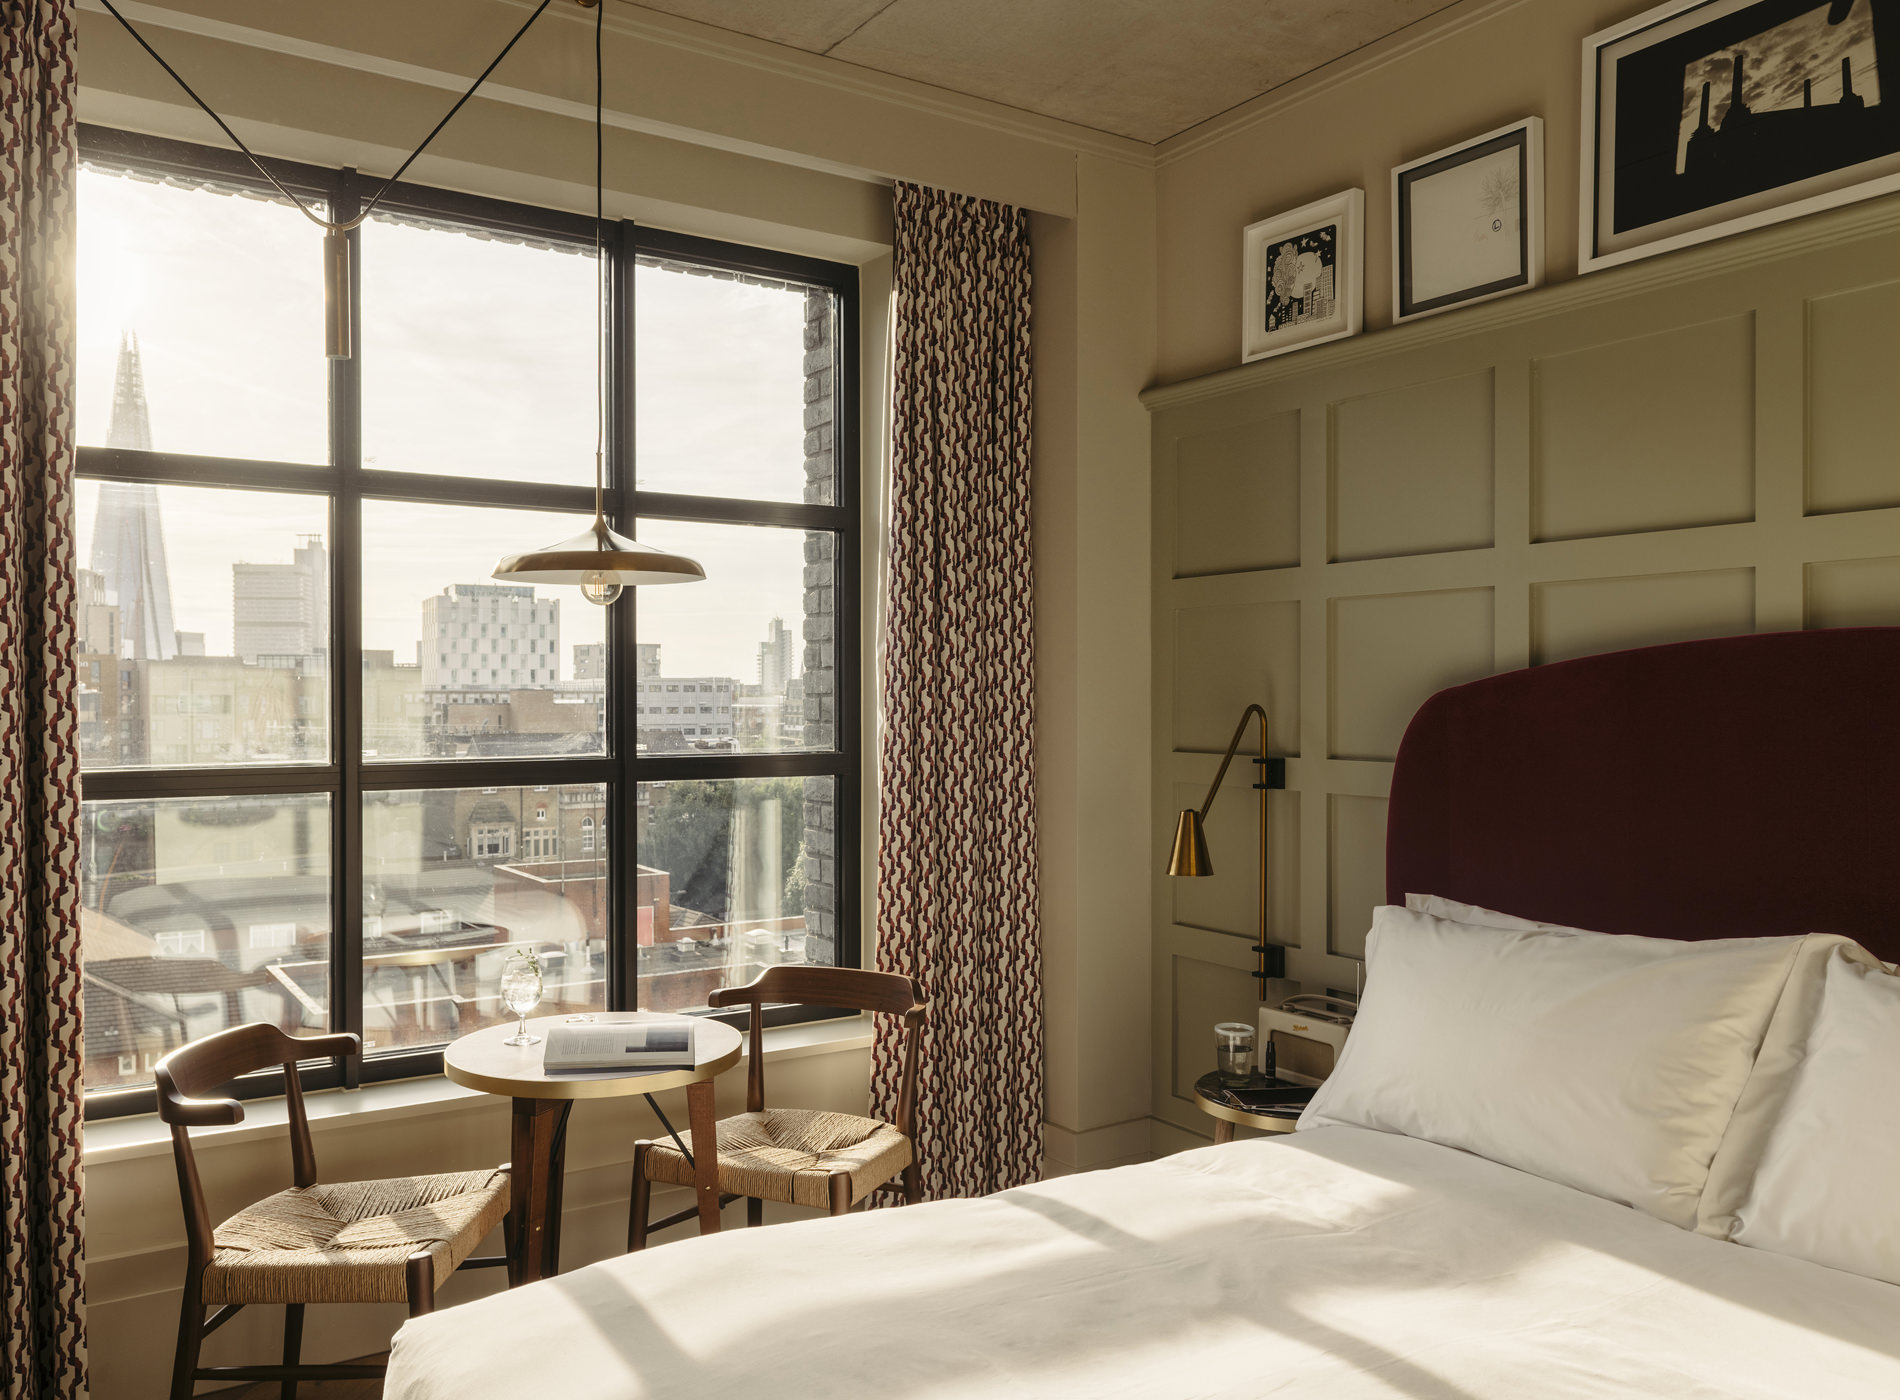 City Guide Londres The Hoxton Southwark Hotel Blackfriars Road London Chambre Cosy